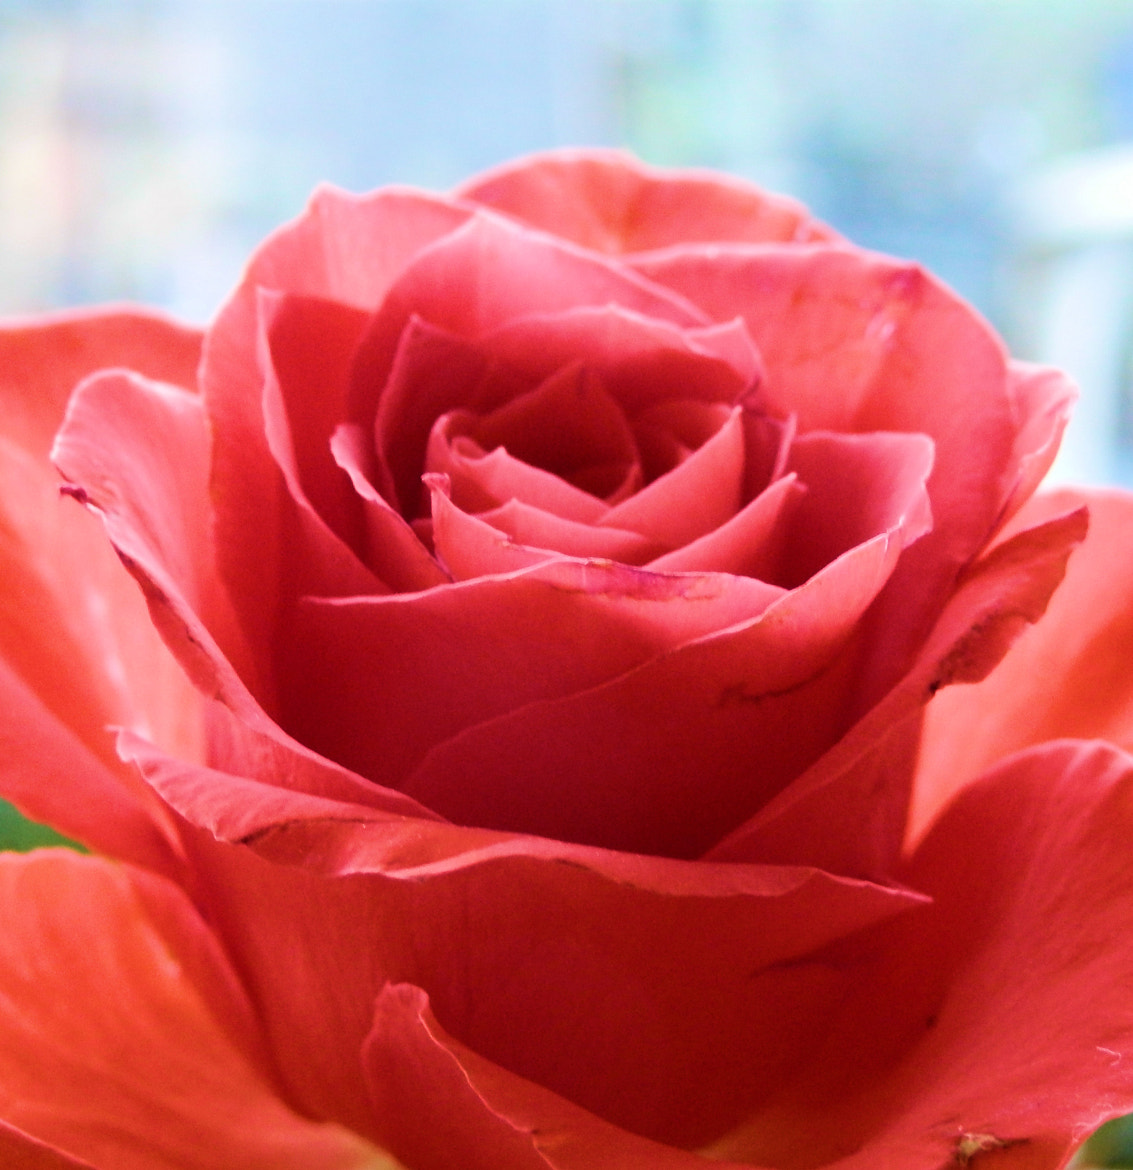 Photograph Rose by Tosca Ruijs on 500px